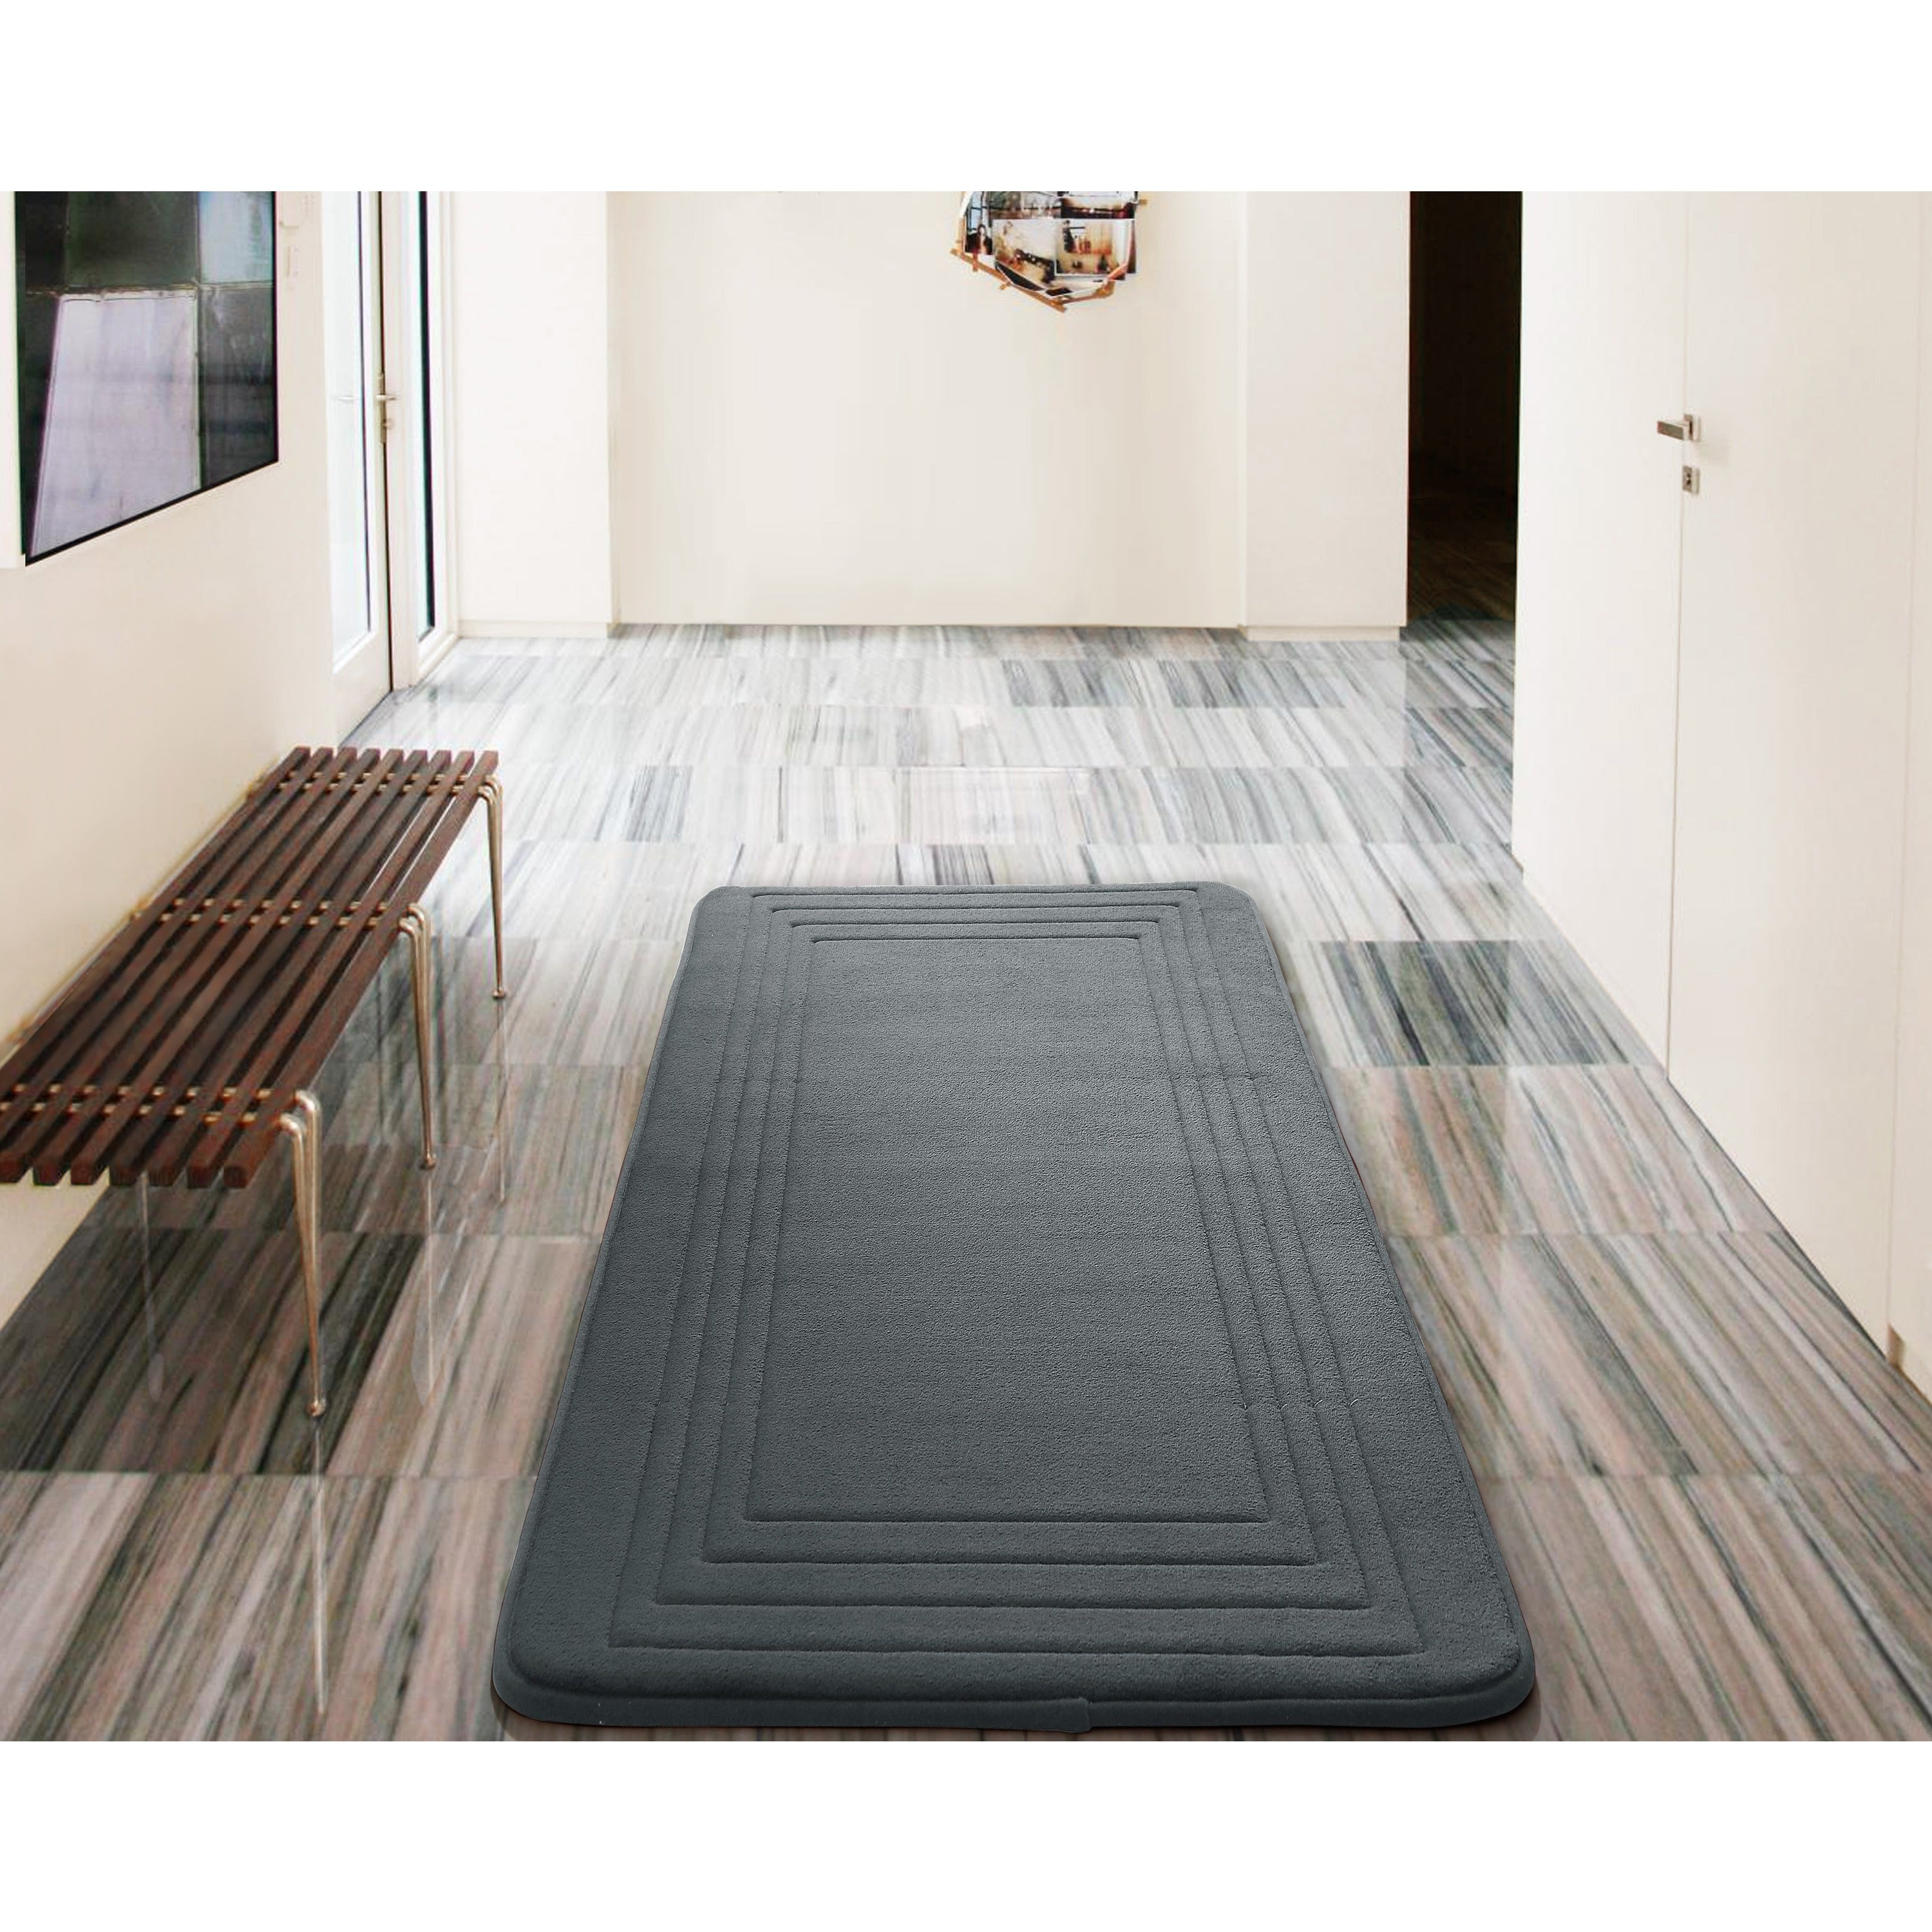 Vcny Hotel Bath Rug 24 X 60 Inches 24x60 Charcoal